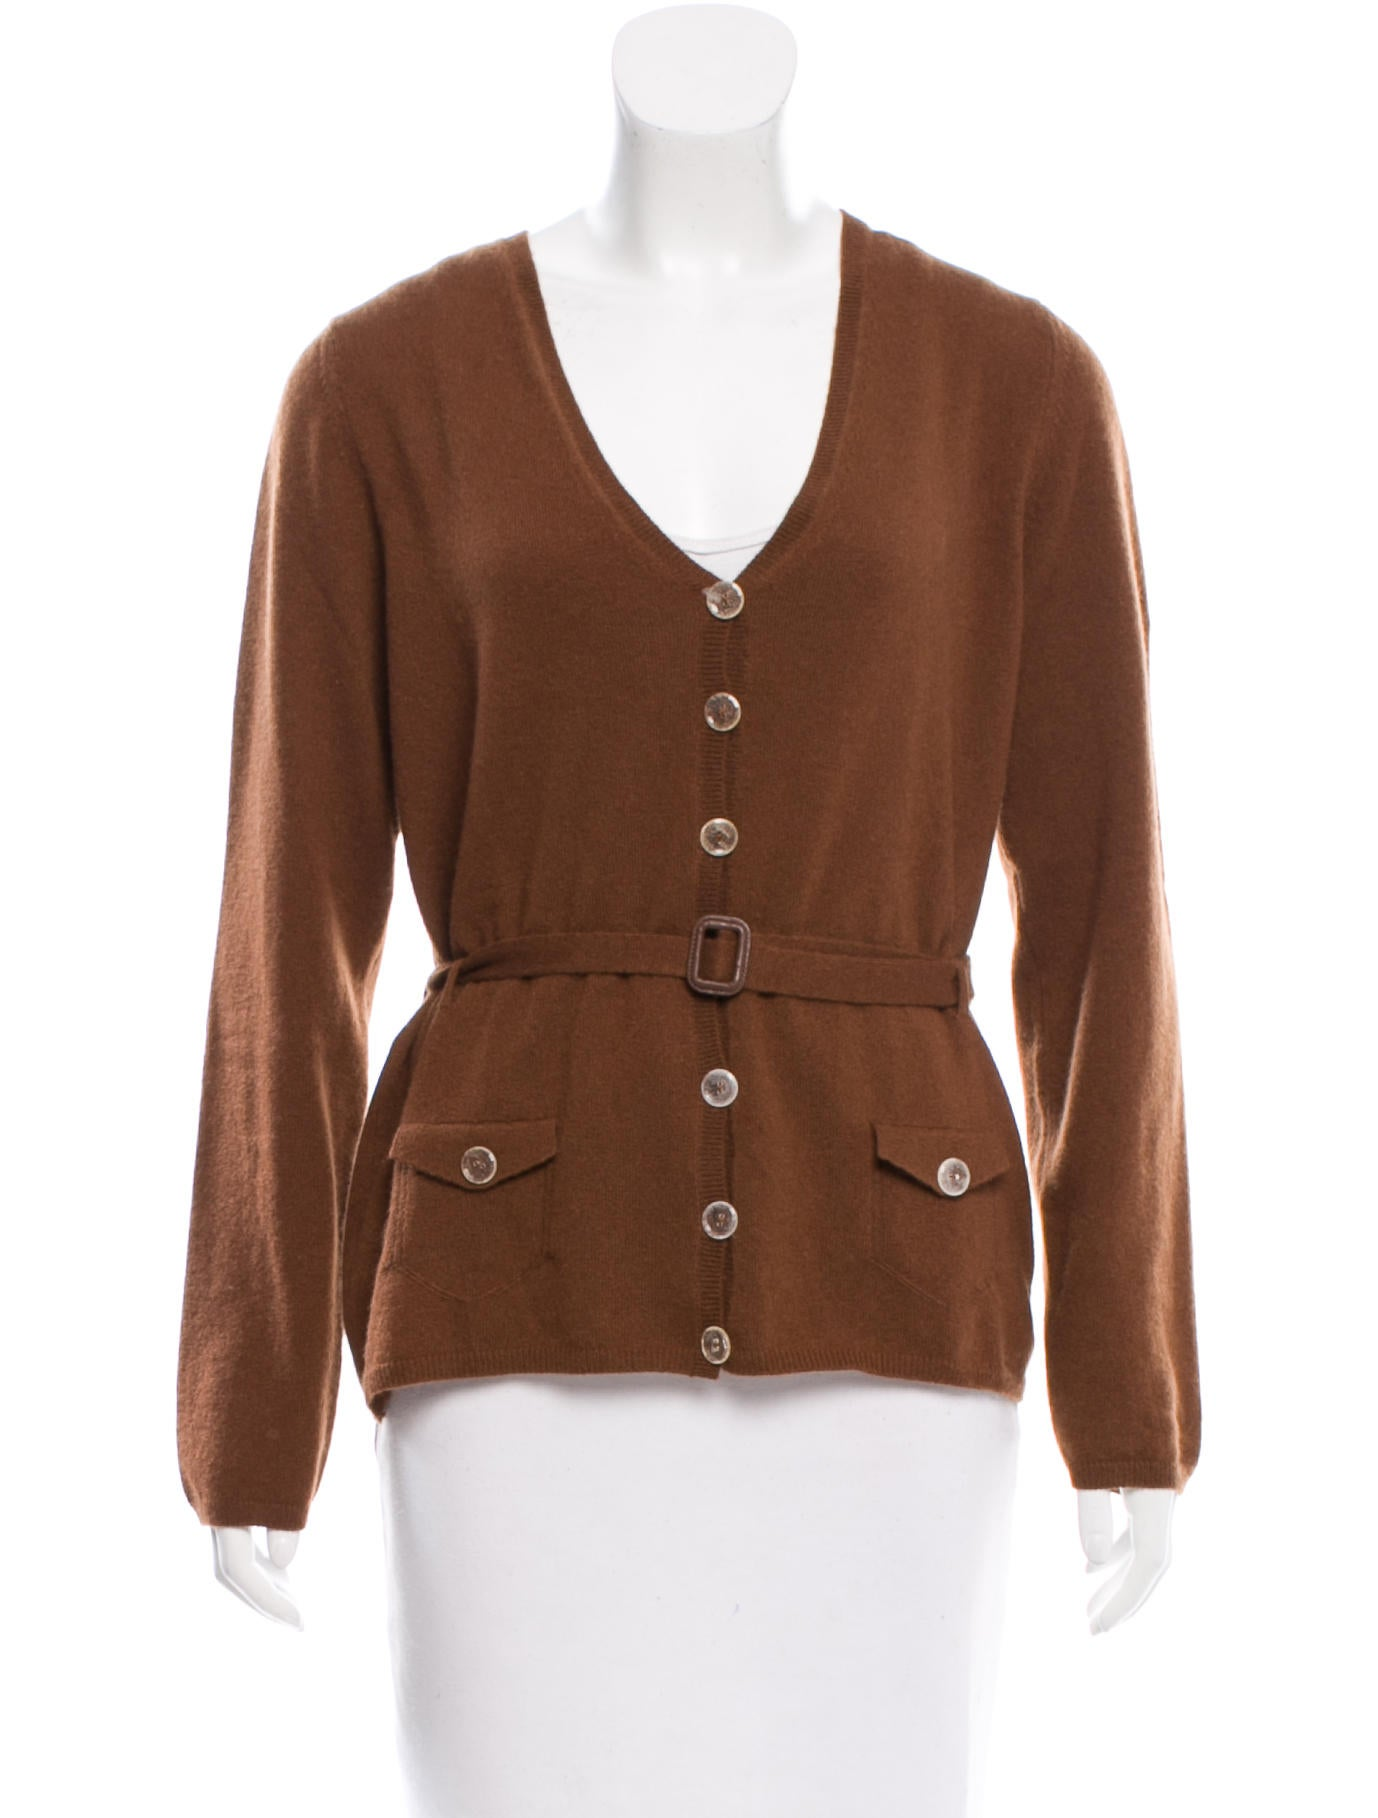 You searched for: belted cardigan! Etsy is the home to thousands of handmade, vintage, and one-of-a-kind products and gifts related to your search. No matter what you're looking for or where you are in the world, our global marketplace of sellers can help you find unique and affordable options. Let's get started!